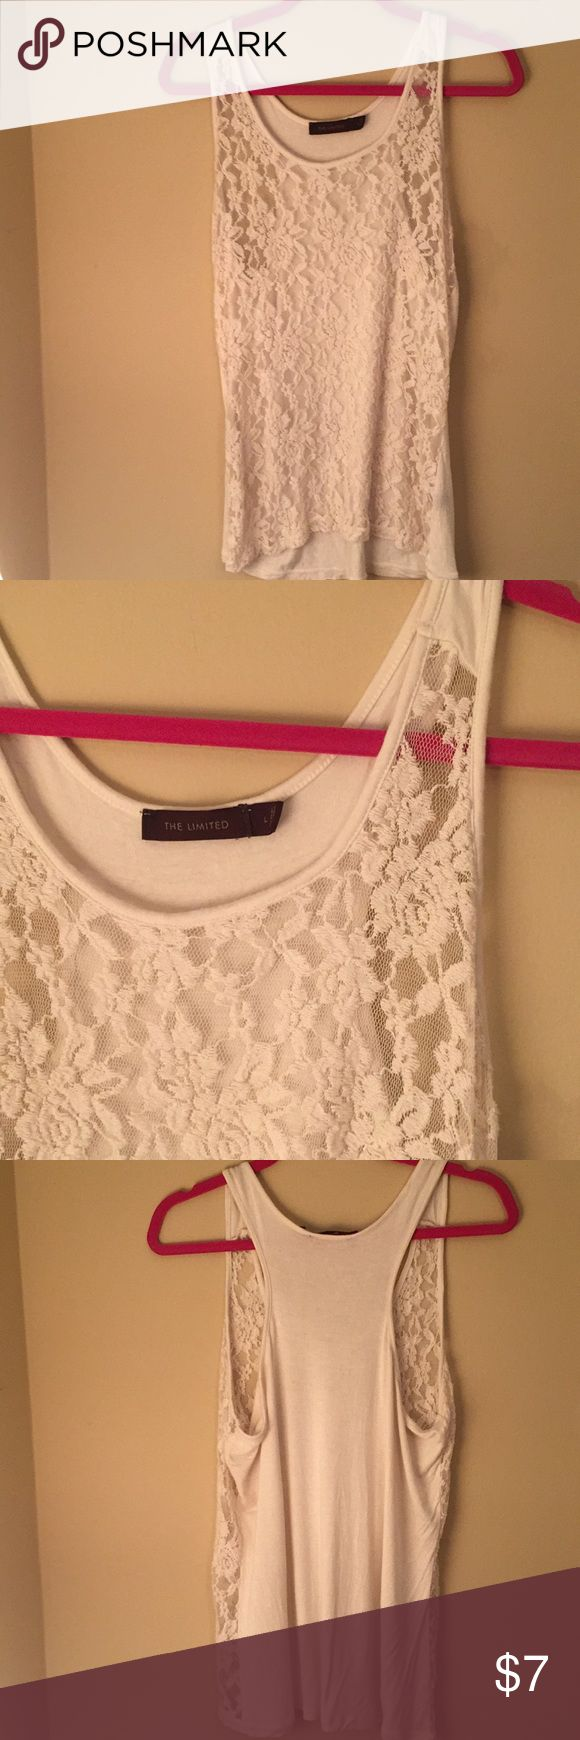 The Limited lace tank top The Limited lace tank top. Size Large. Off-white/ cream color. Purchased on Posh, but ended up being too big for me. The Limited Tops Tank Tops